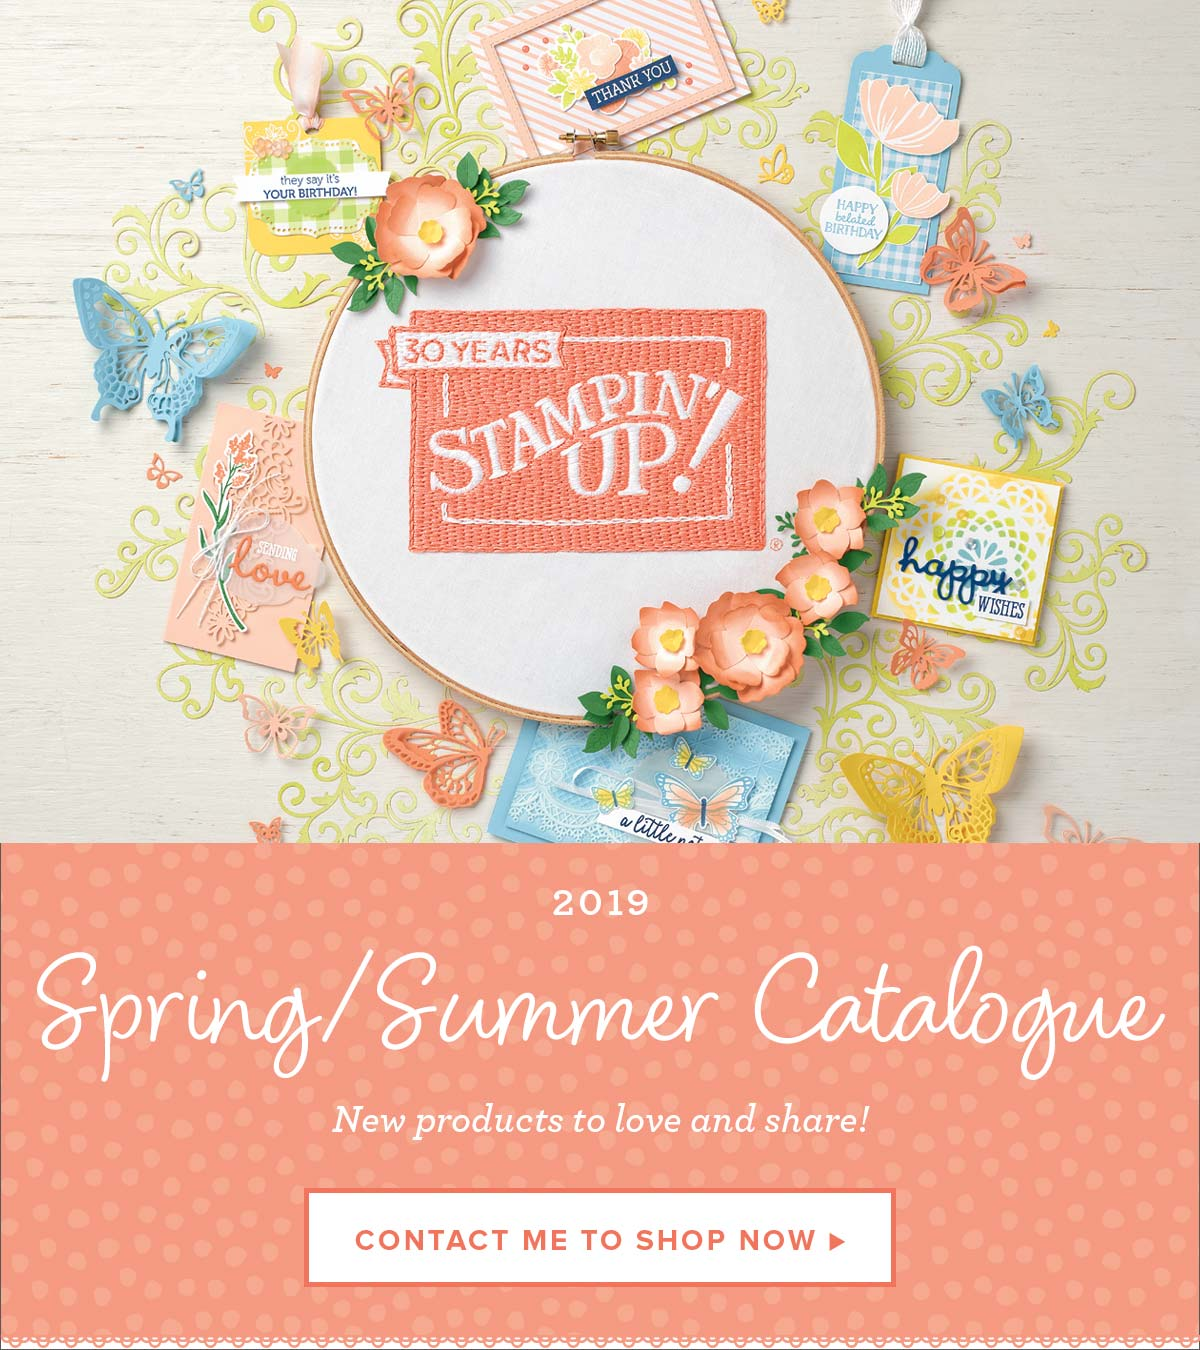 Browse The Spring/Summer catalogue.